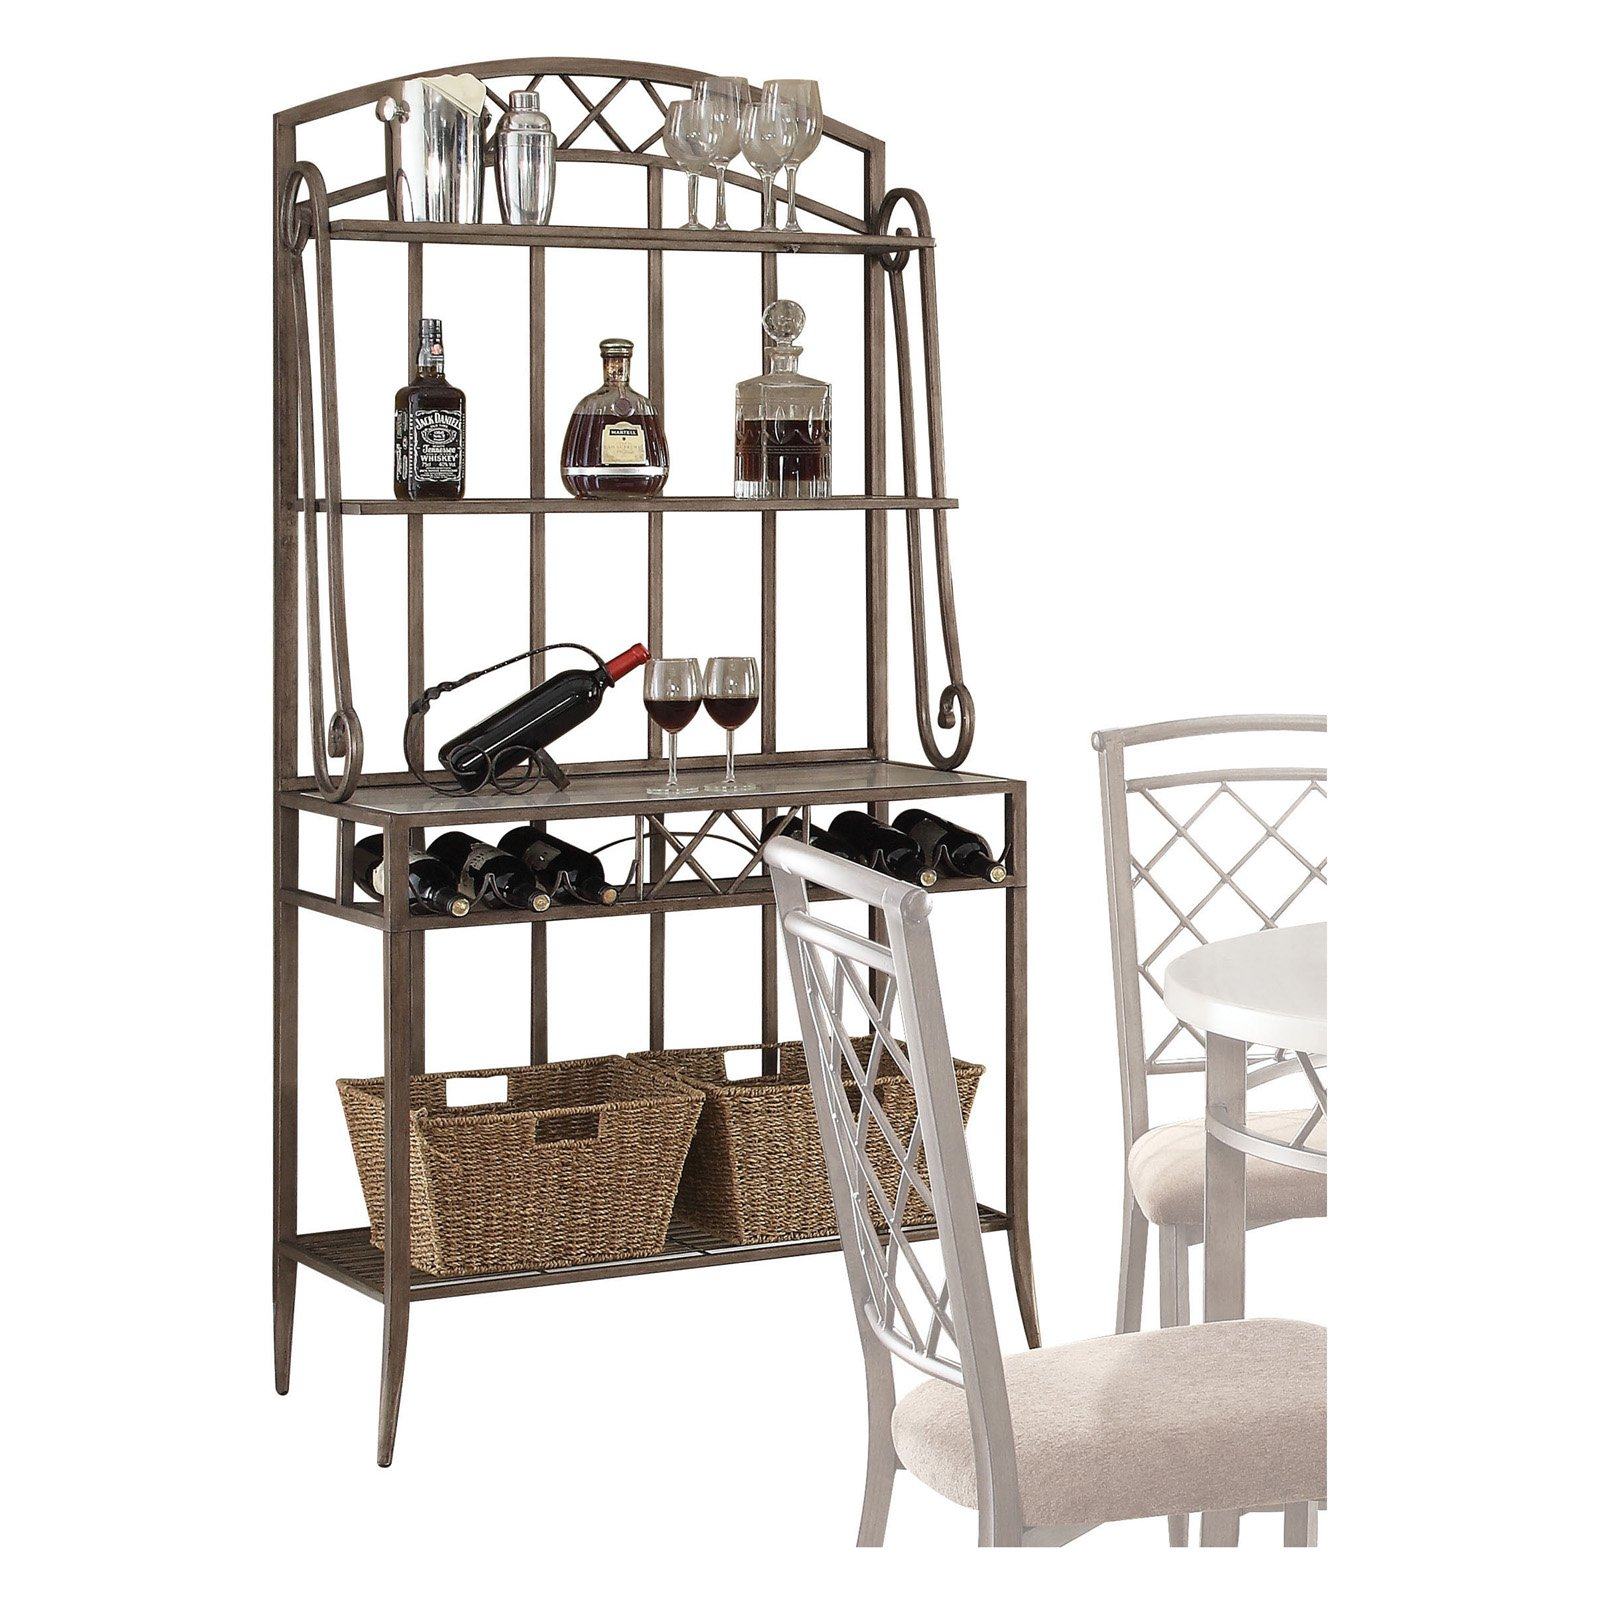 ACME Aldric Baker's Rack, Faux Marble & Antique